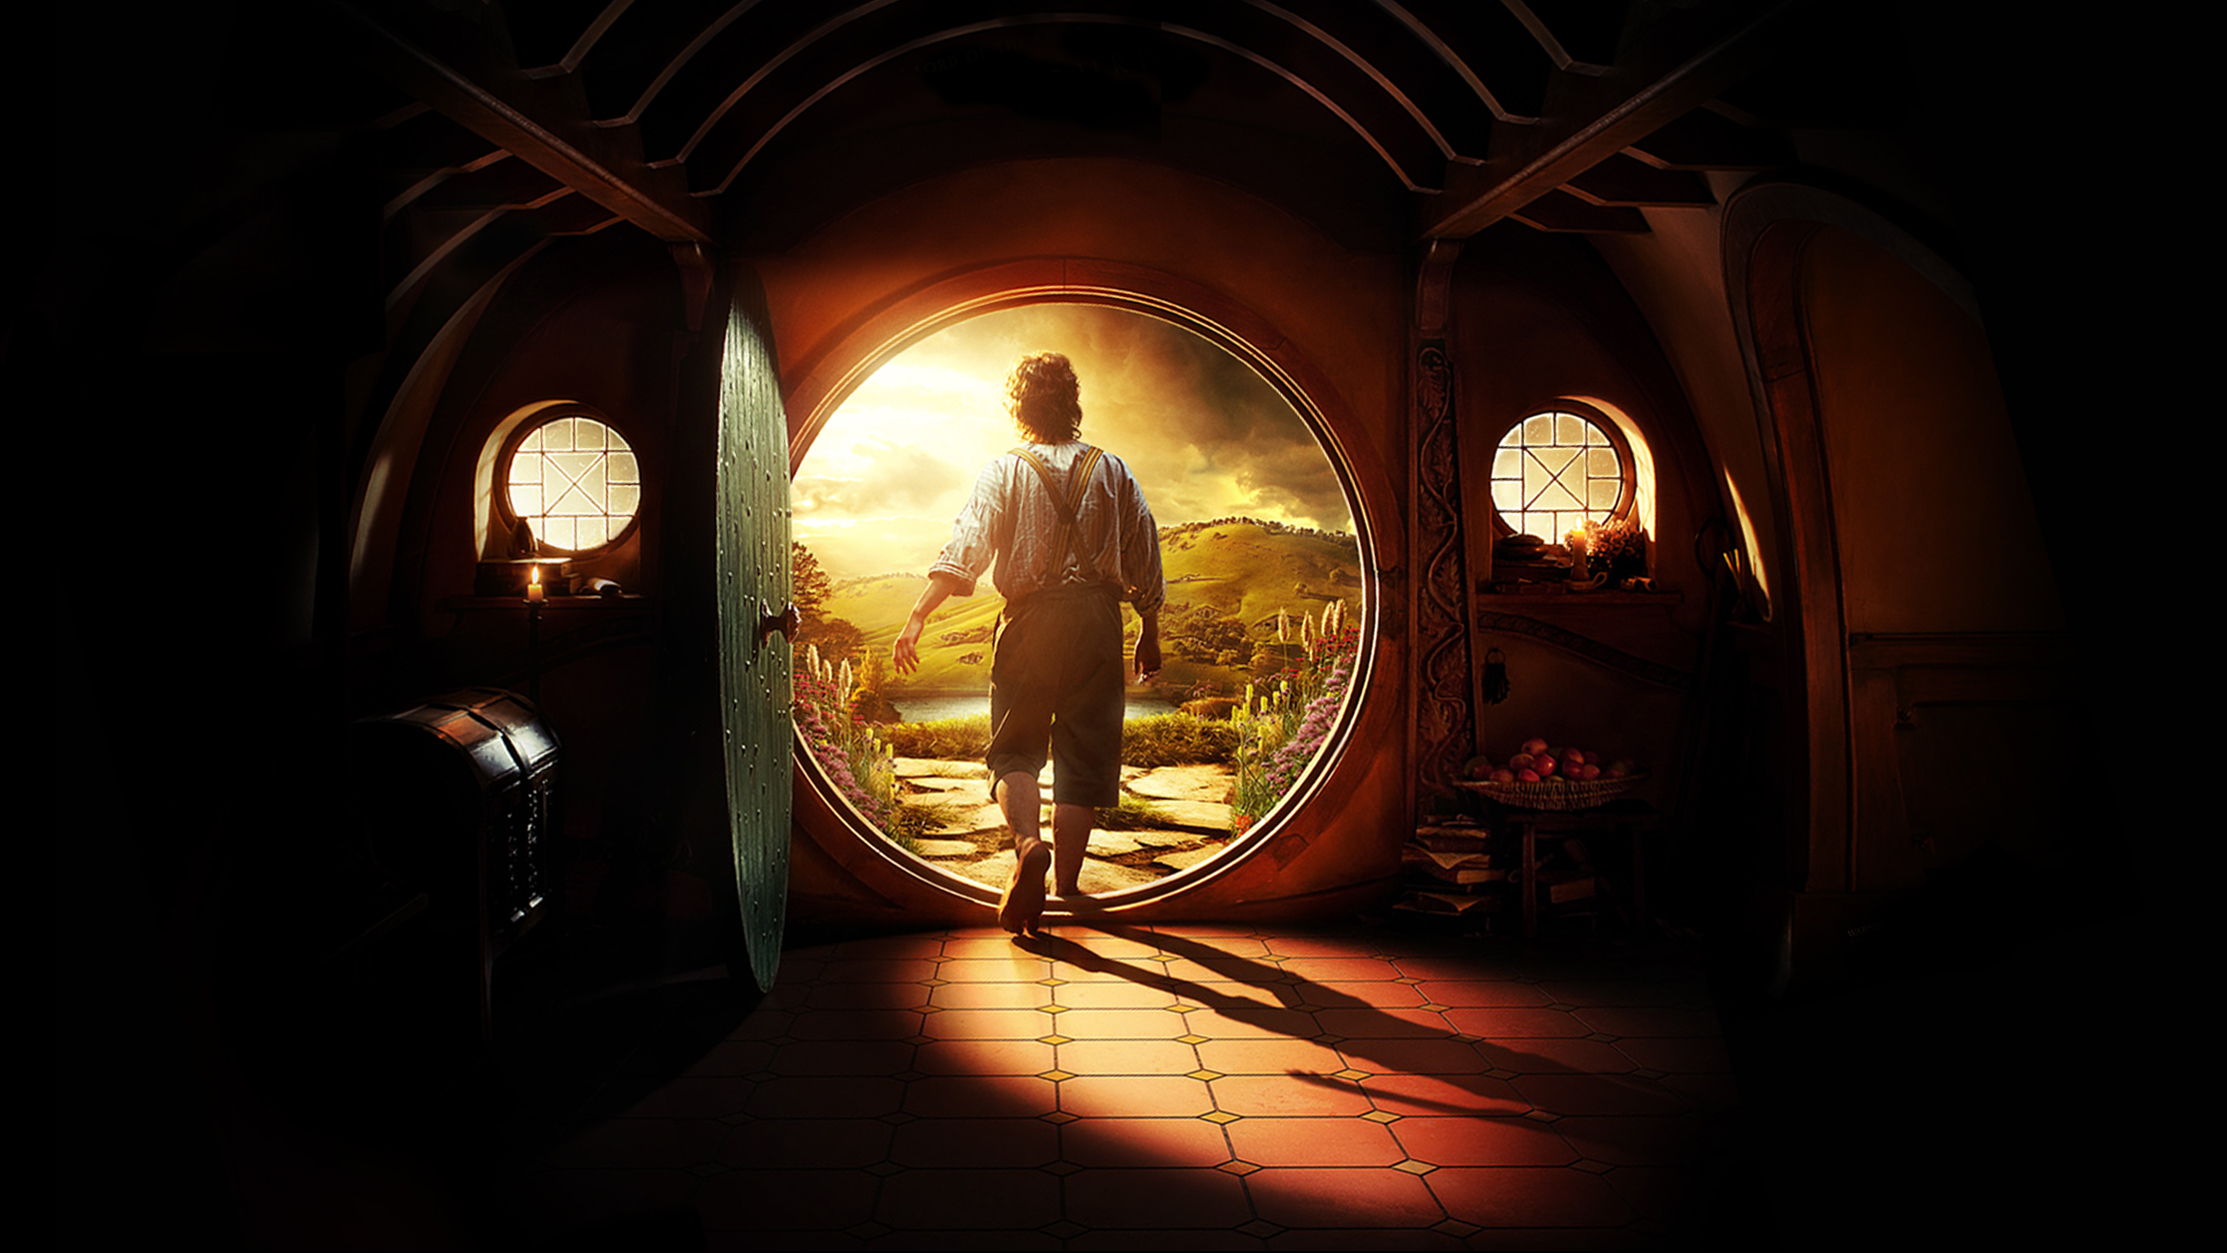 the hobbit movie review The hobbit: an unexpected journey covers the first six chapters of the hobbit with a few  in the hobbit,  the hobbit: an unexpected journey: the movie storybook.